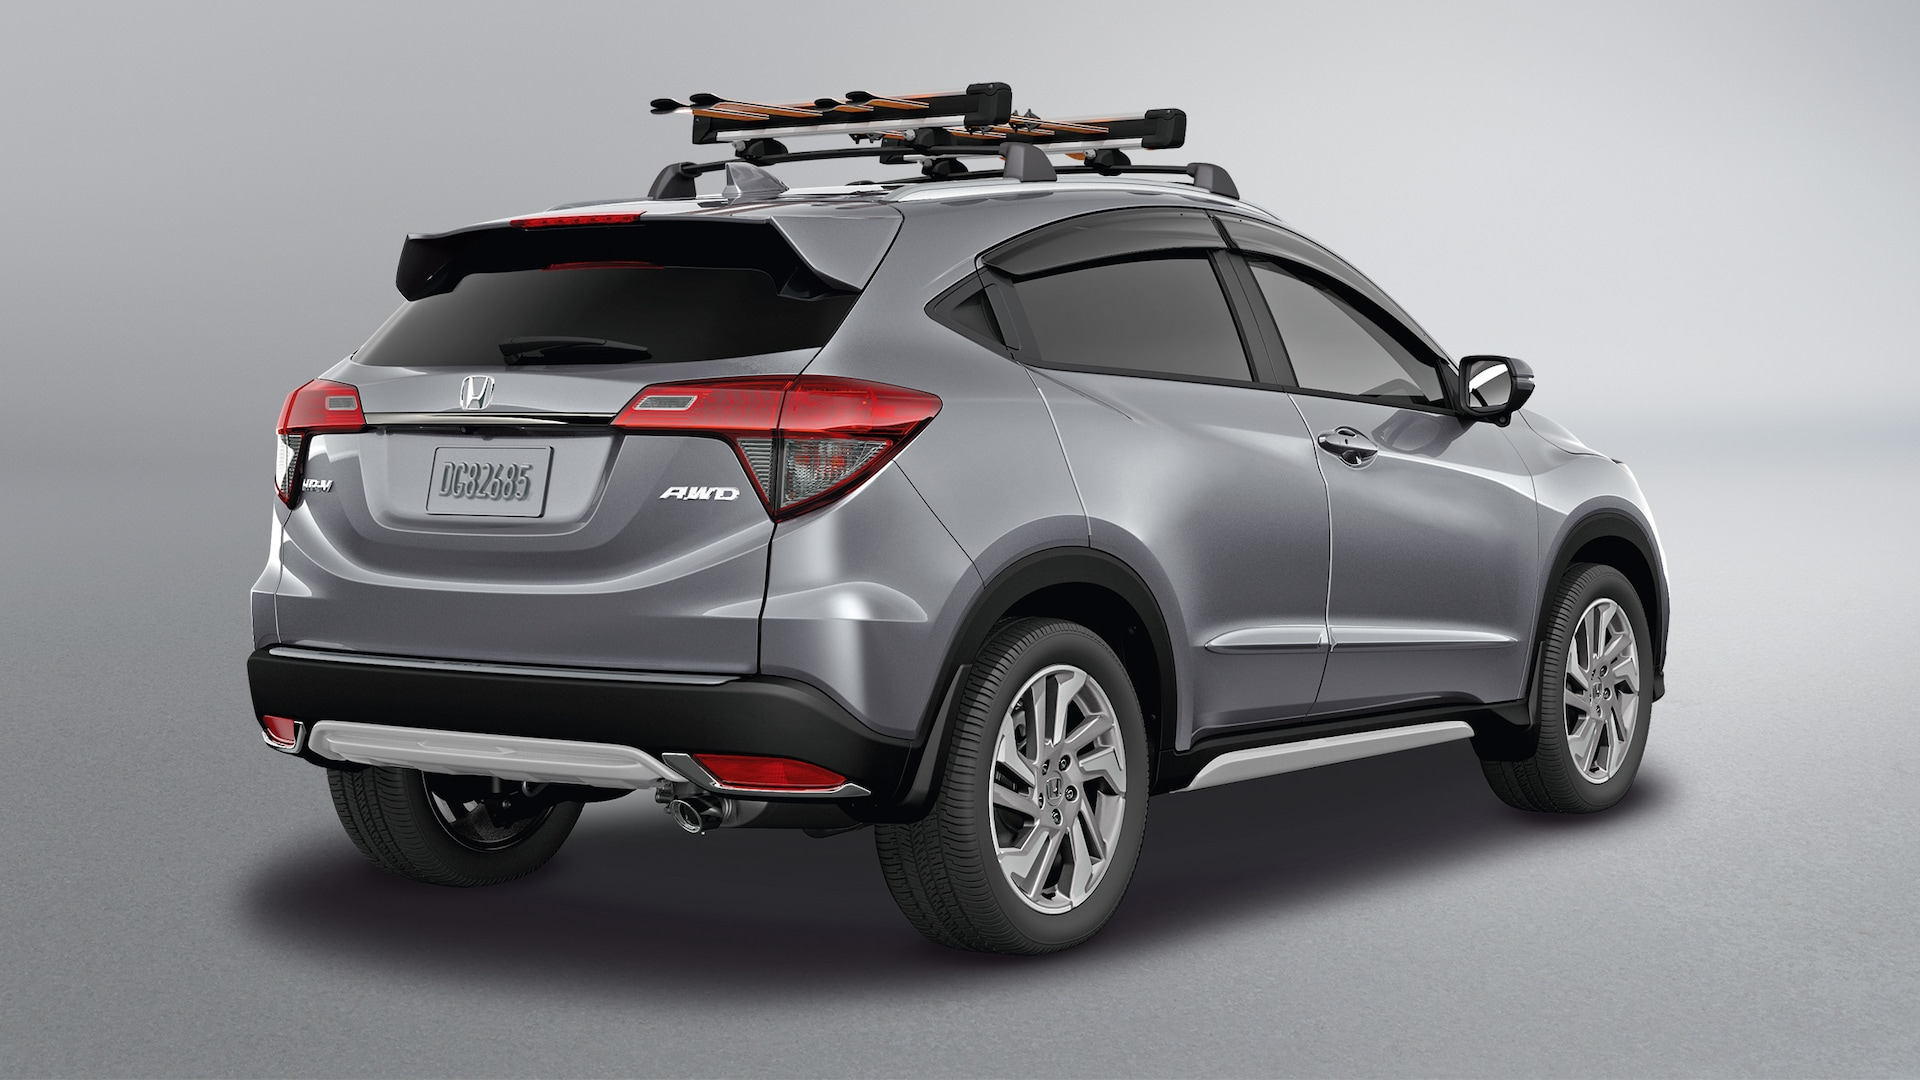 Rear 3/4 passenger-side view of the 2020 Honda HR-V EX in Lunar Silver Metallic with Honda Genuine Accessories.